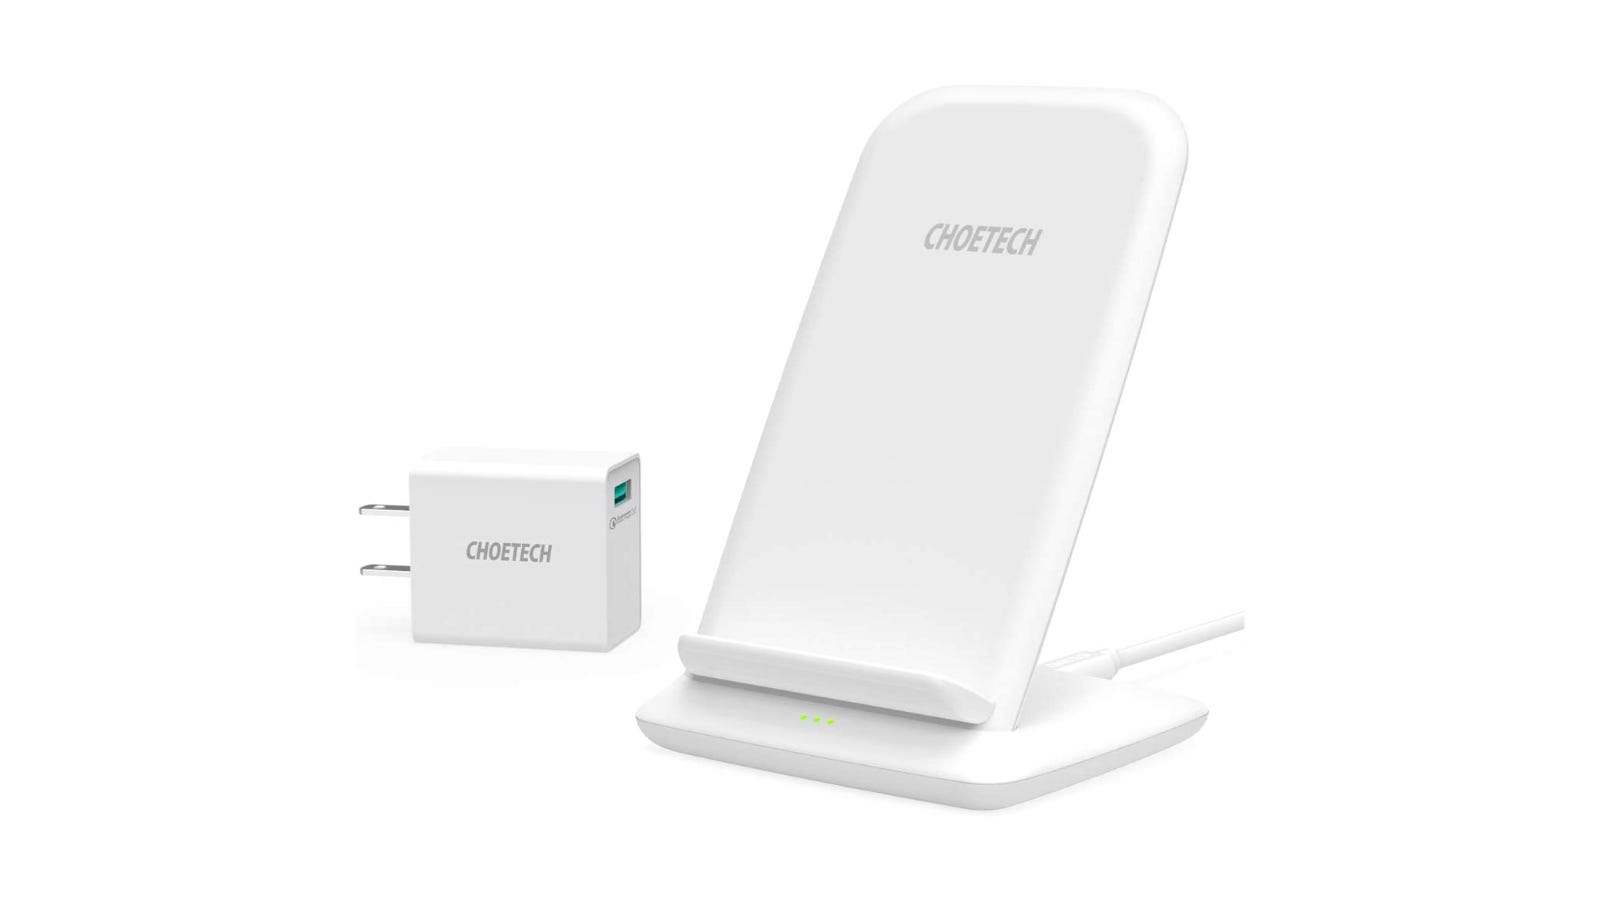 CHOETECH 15W Wireless Charger